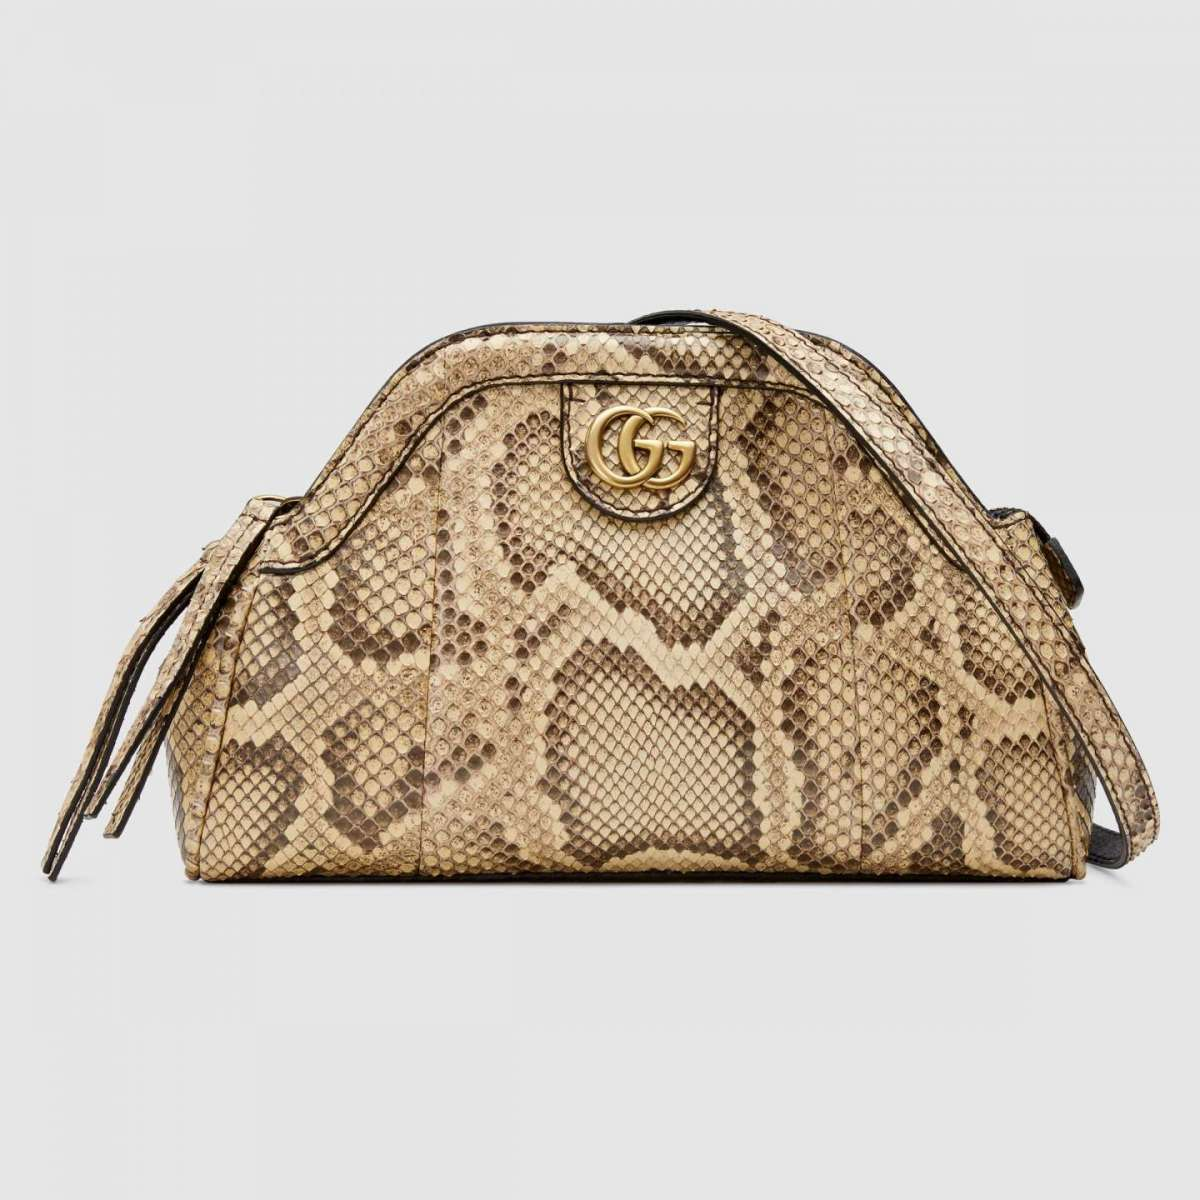 Borsa piccola in pitone Gucci Re(Belle) a 2100 euro